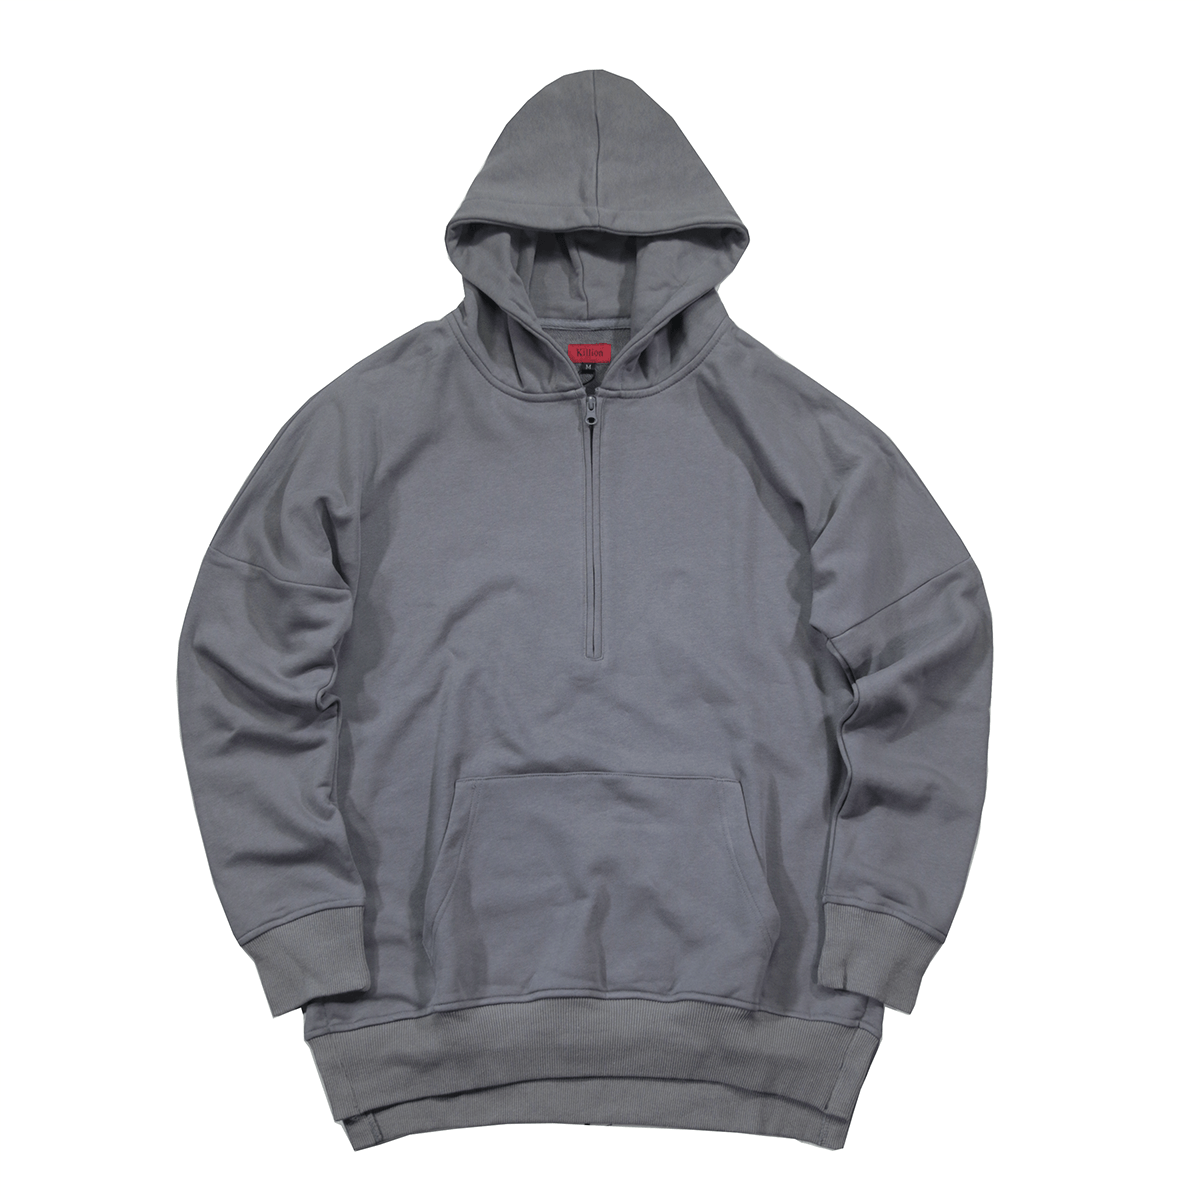 cheapest price shop for best sneakers for cheap Side Cut Quarter Zip Hoodie - Washed Charcoal